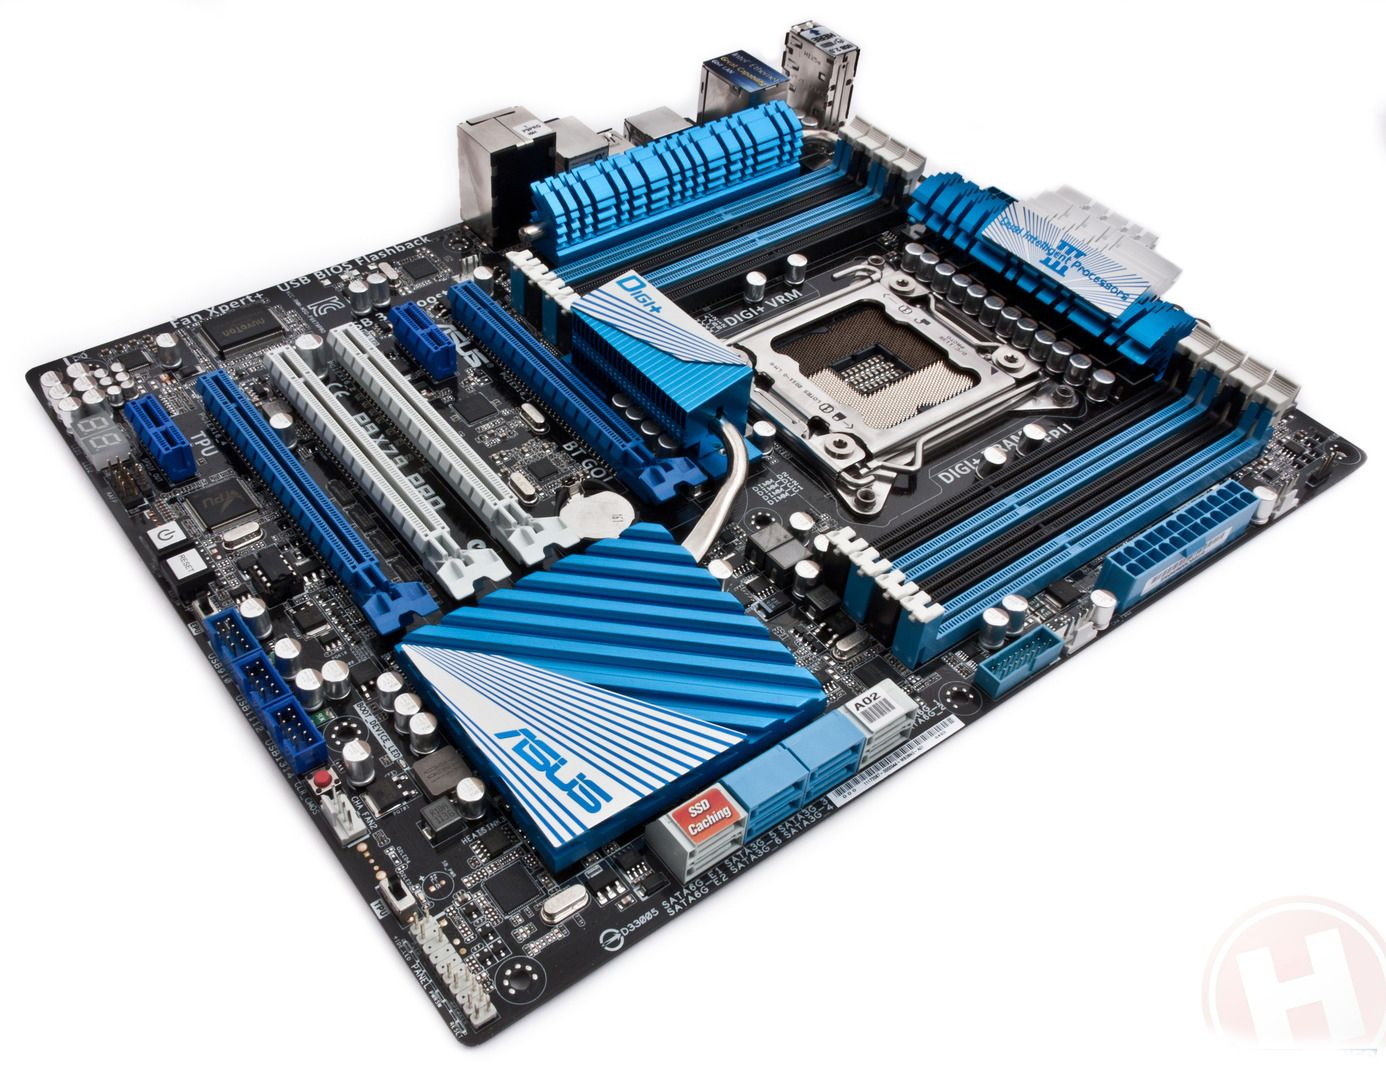 Asus P9X79 Pro Pc components, Electronic components, Asus